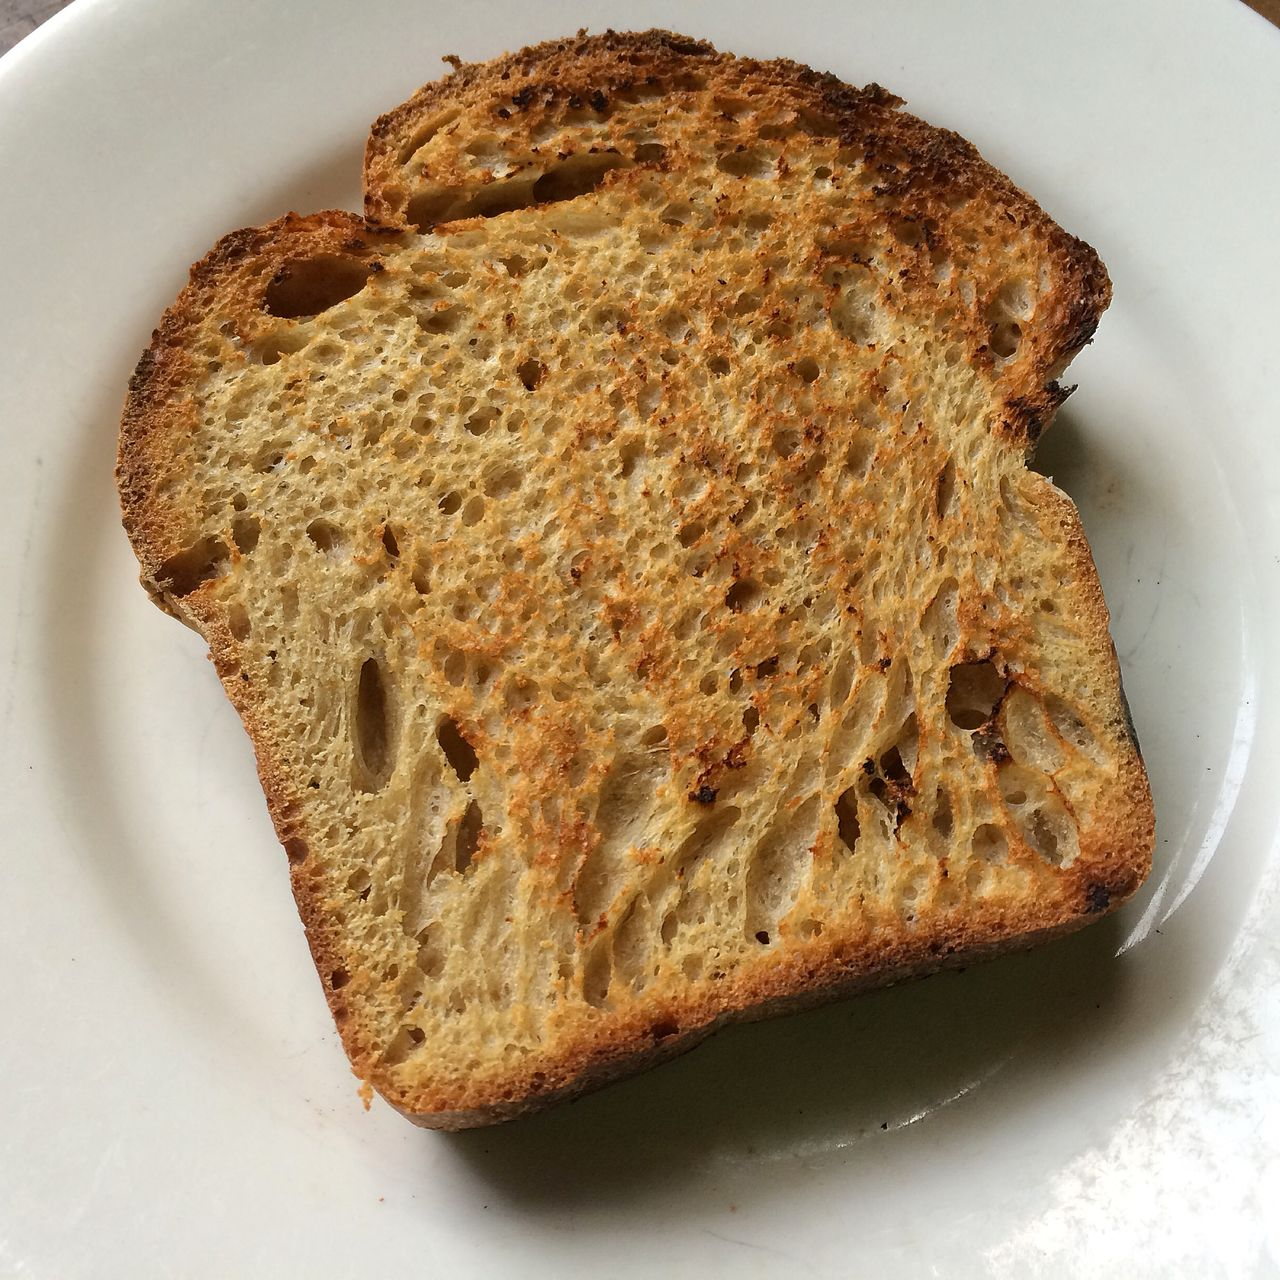 Close-up of toasted bread in plate